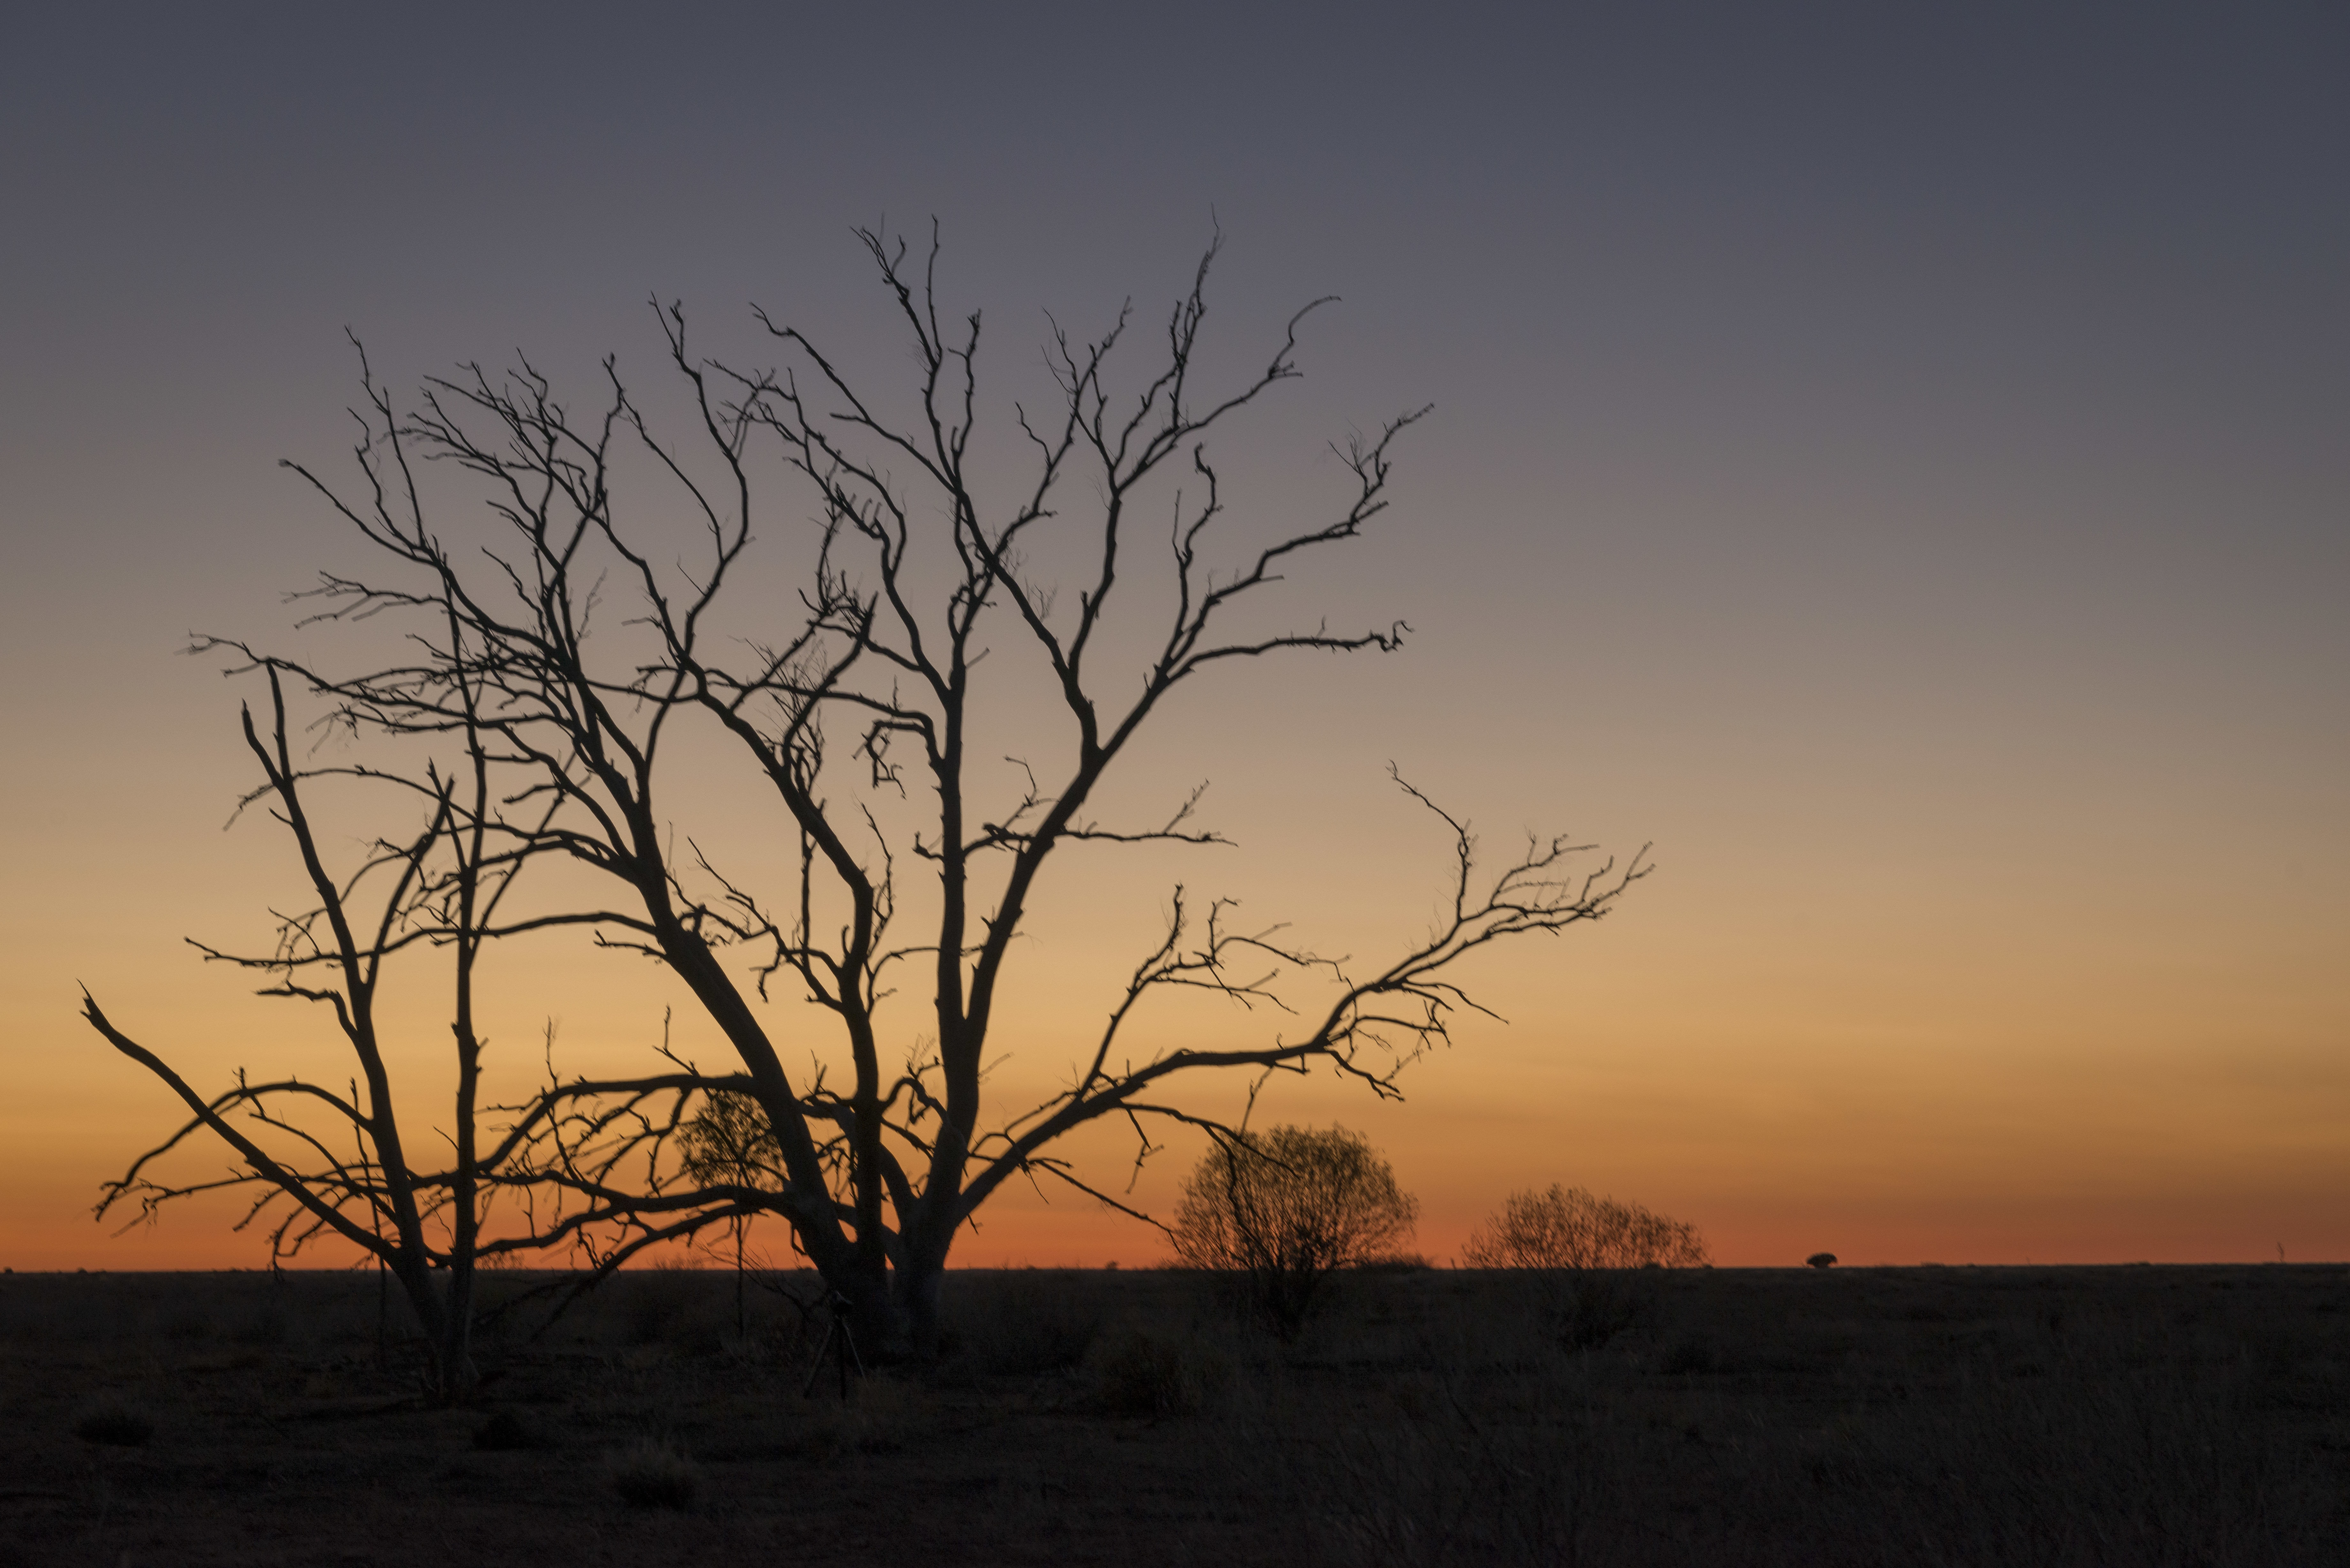 Tree silhouette at sunset in outback, Sturt National Park